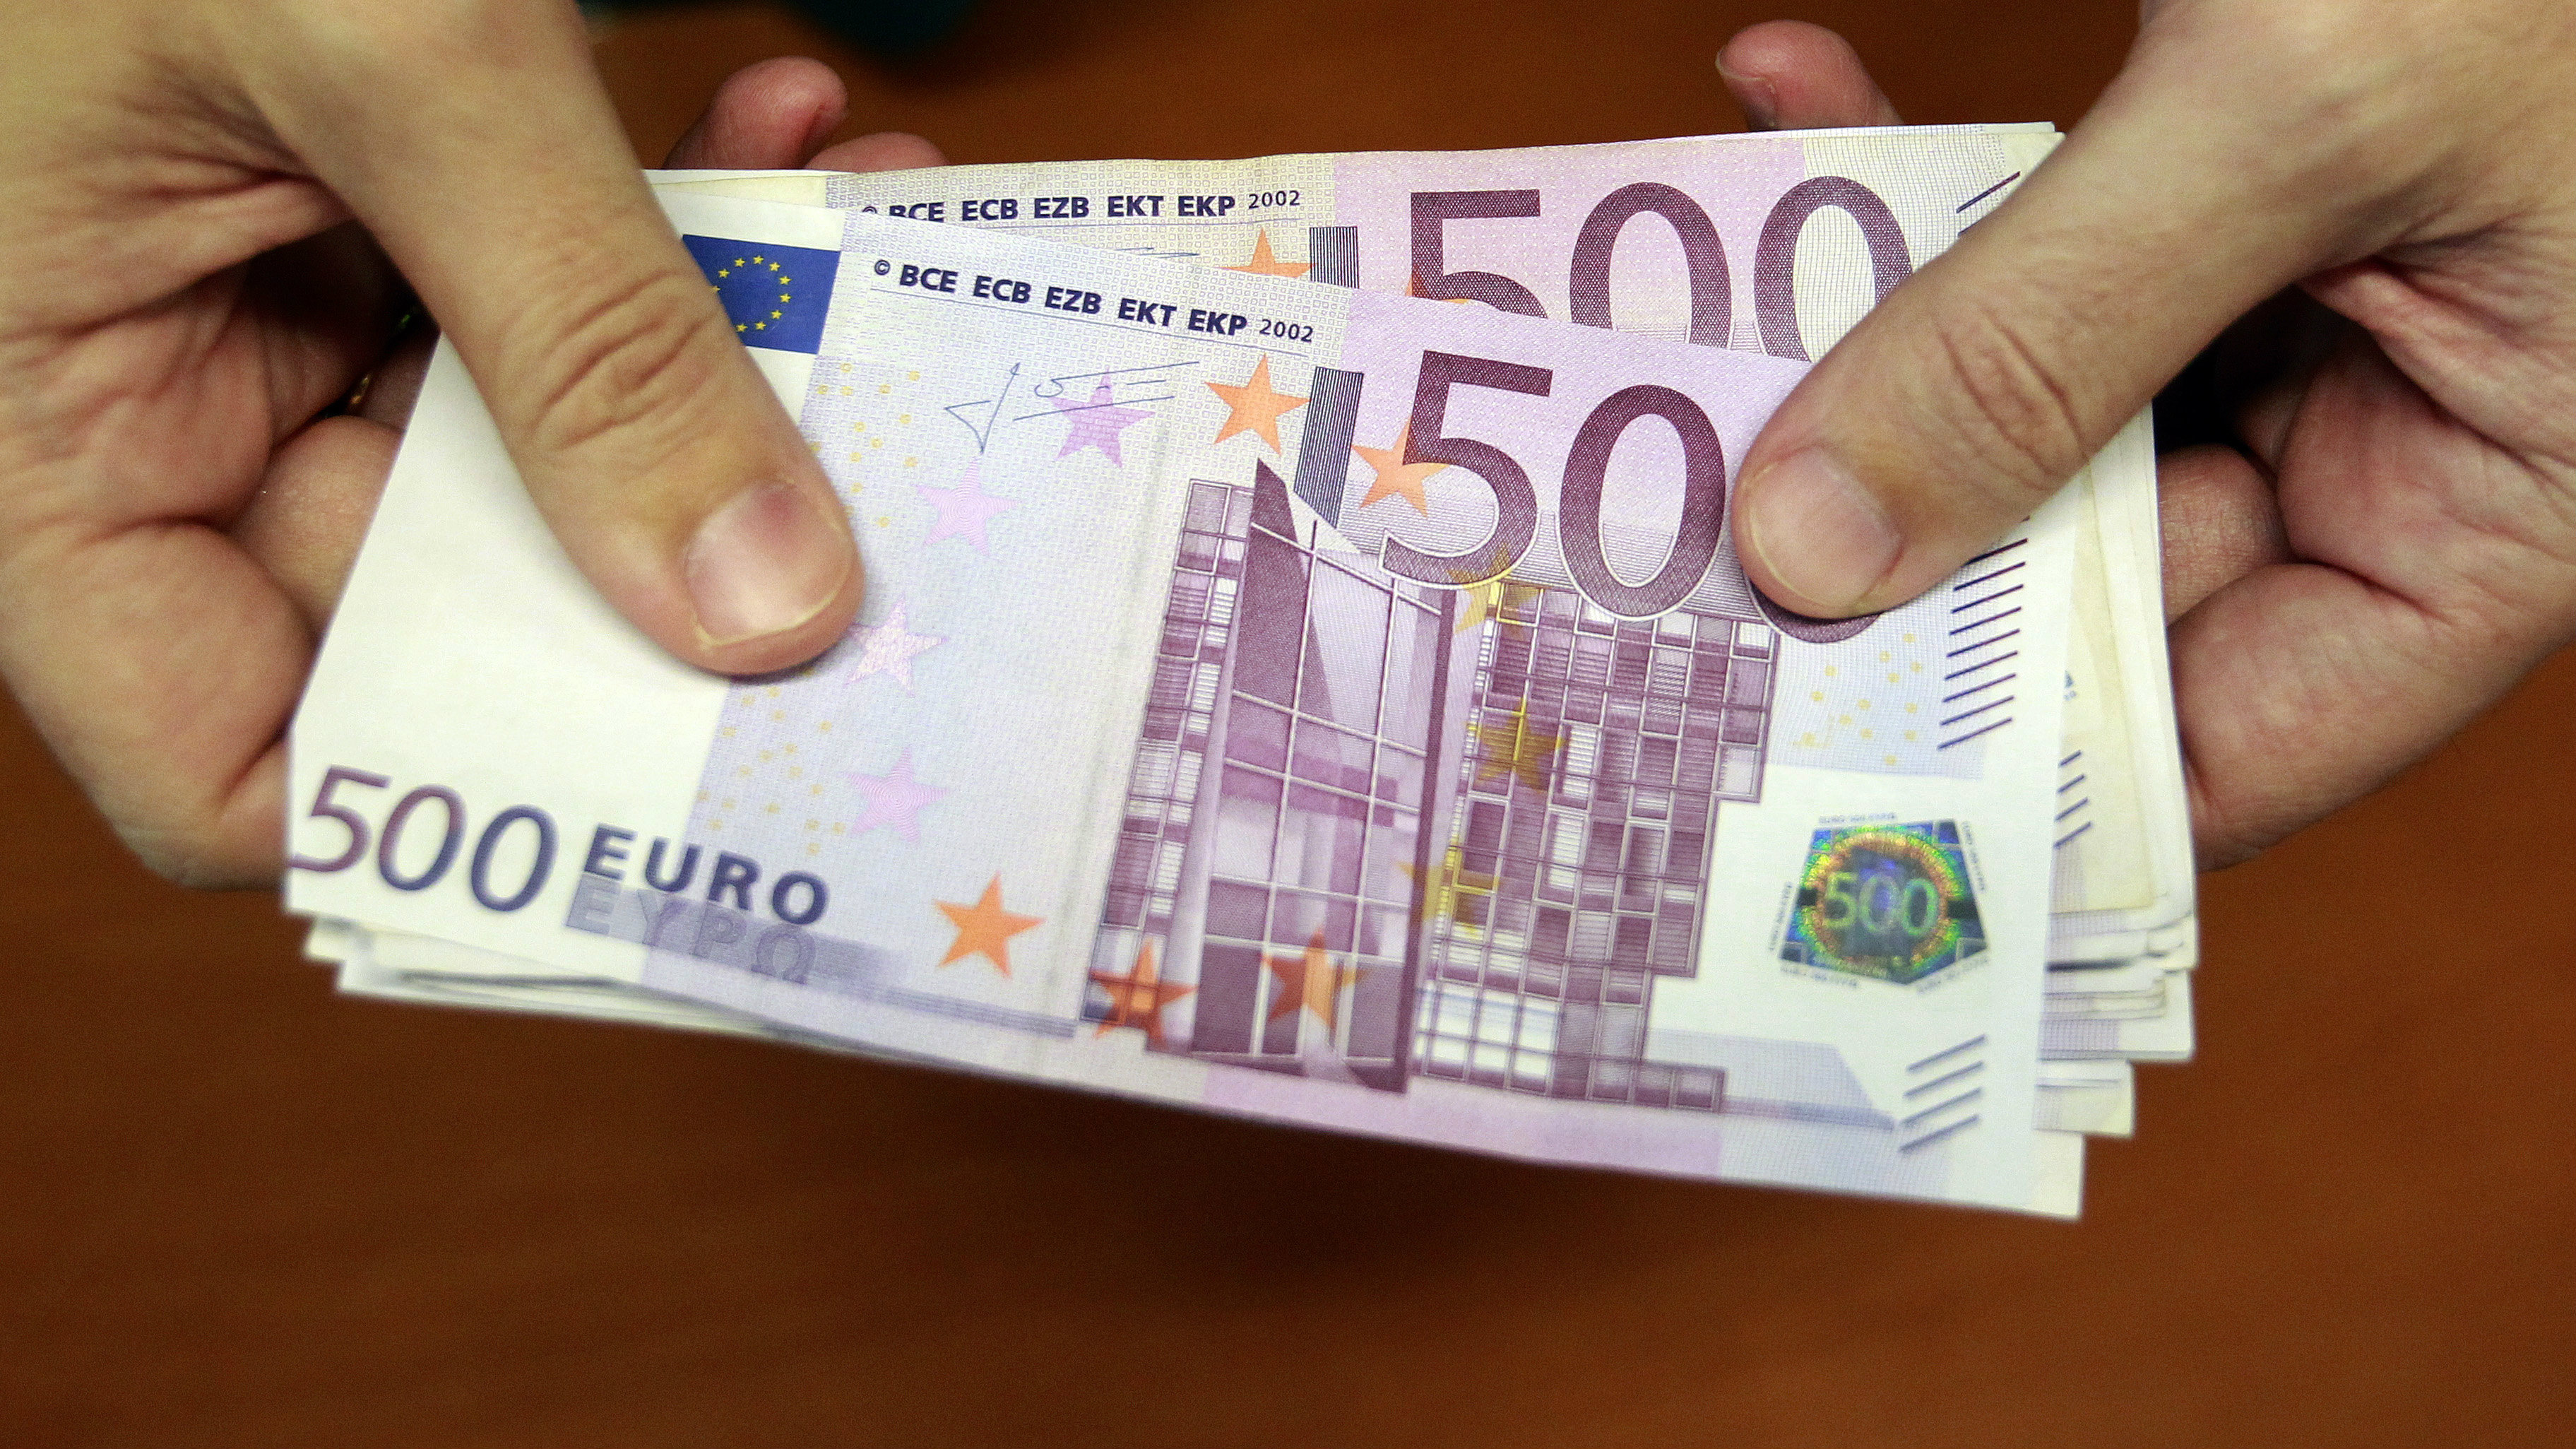 A bank employee holds a pile of 500 euro notes